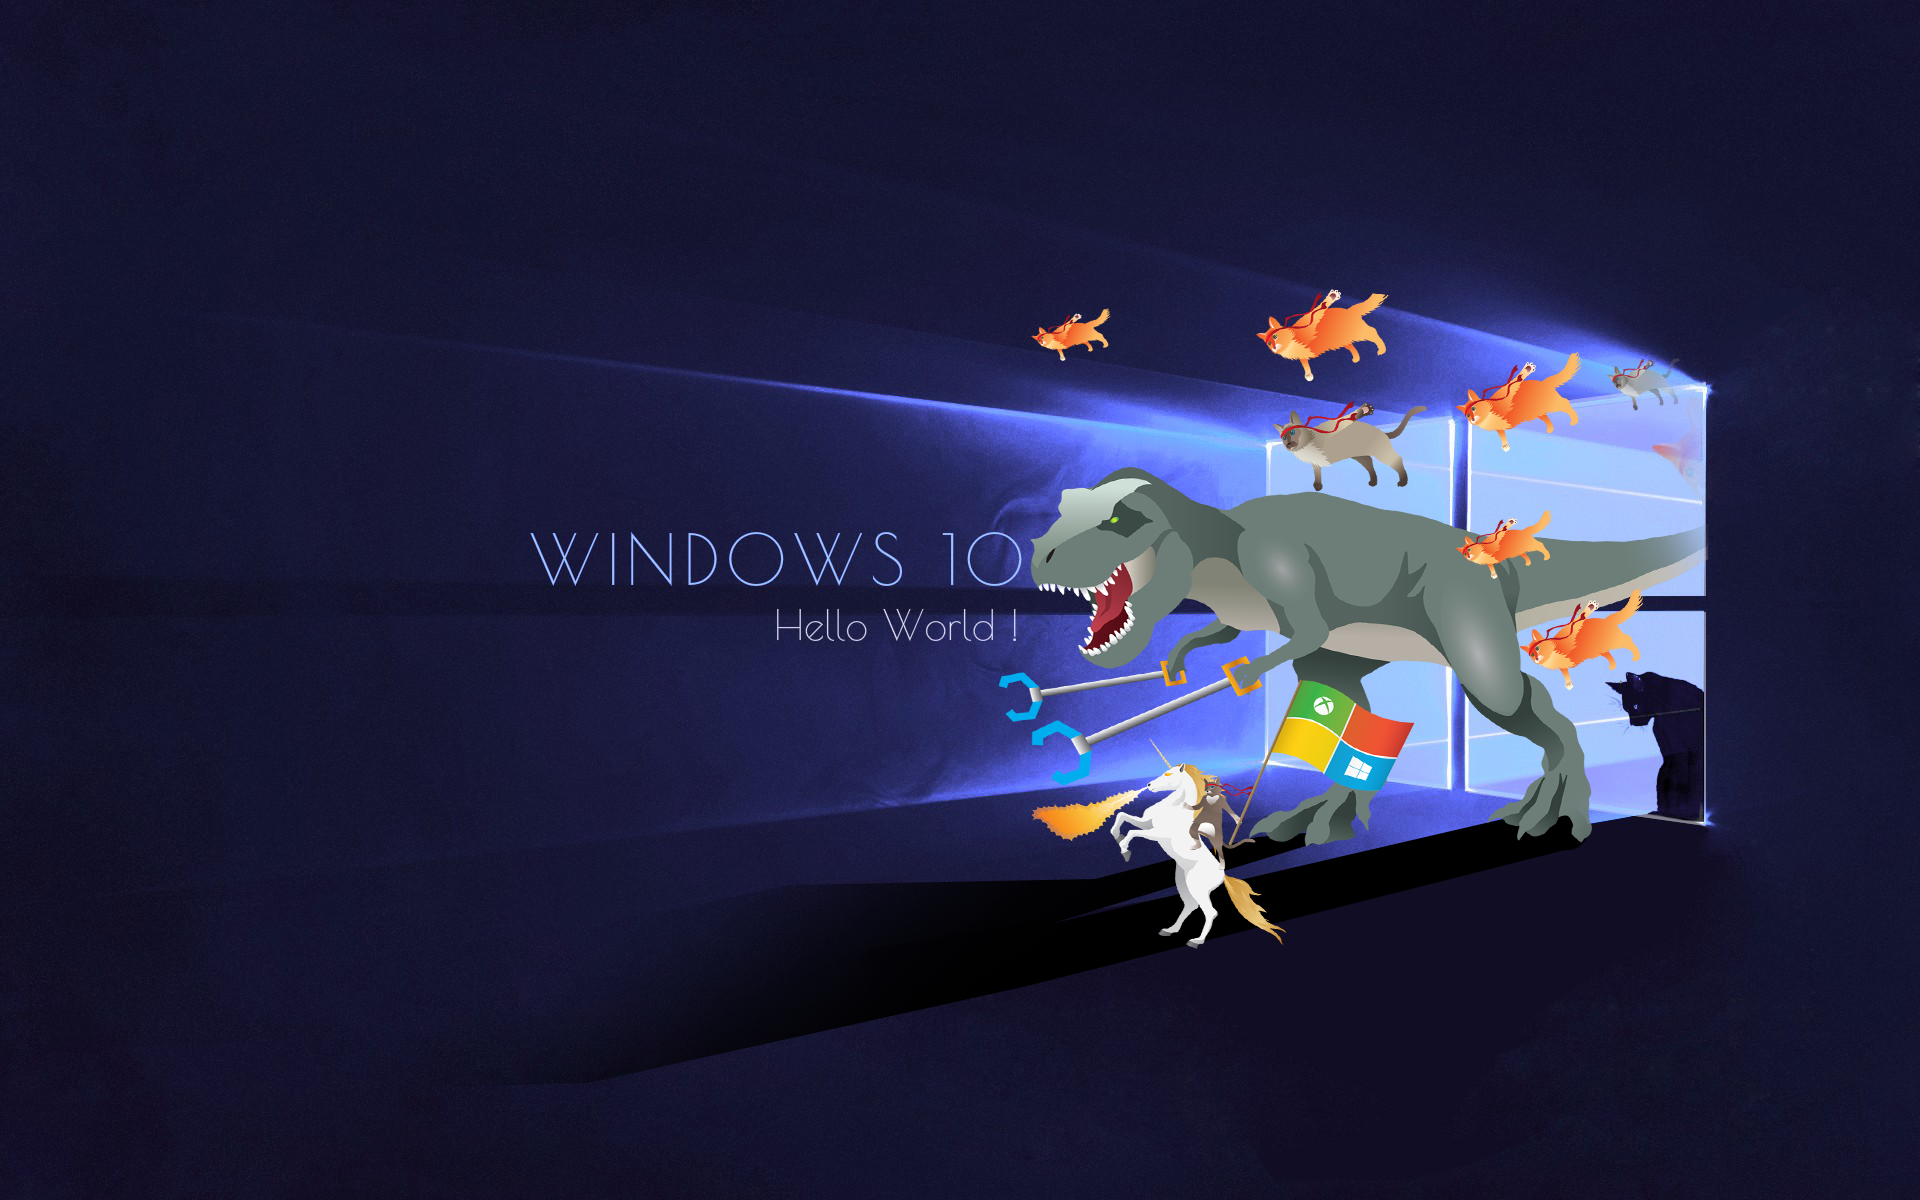 Windows 10 ninja cat wallpaper wallpapersafari for 10 40 window definition